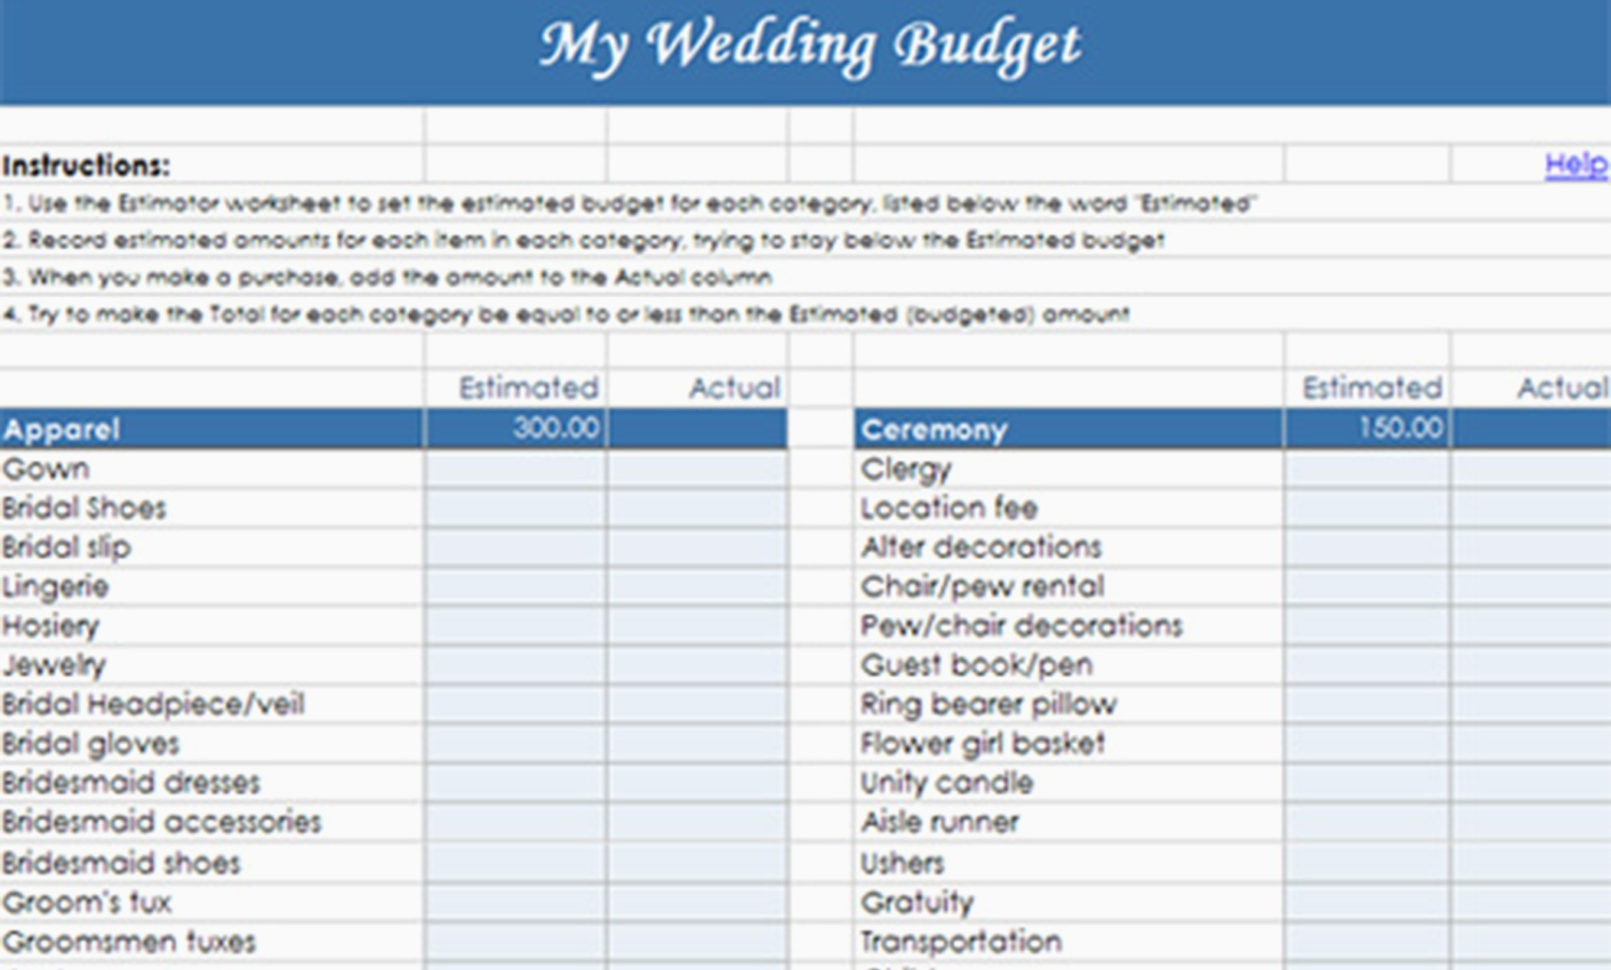 My Budget Spreadsheet Pertaining To Destination Wedding Budget Spreadsheet My Templates  Parttime Jobs